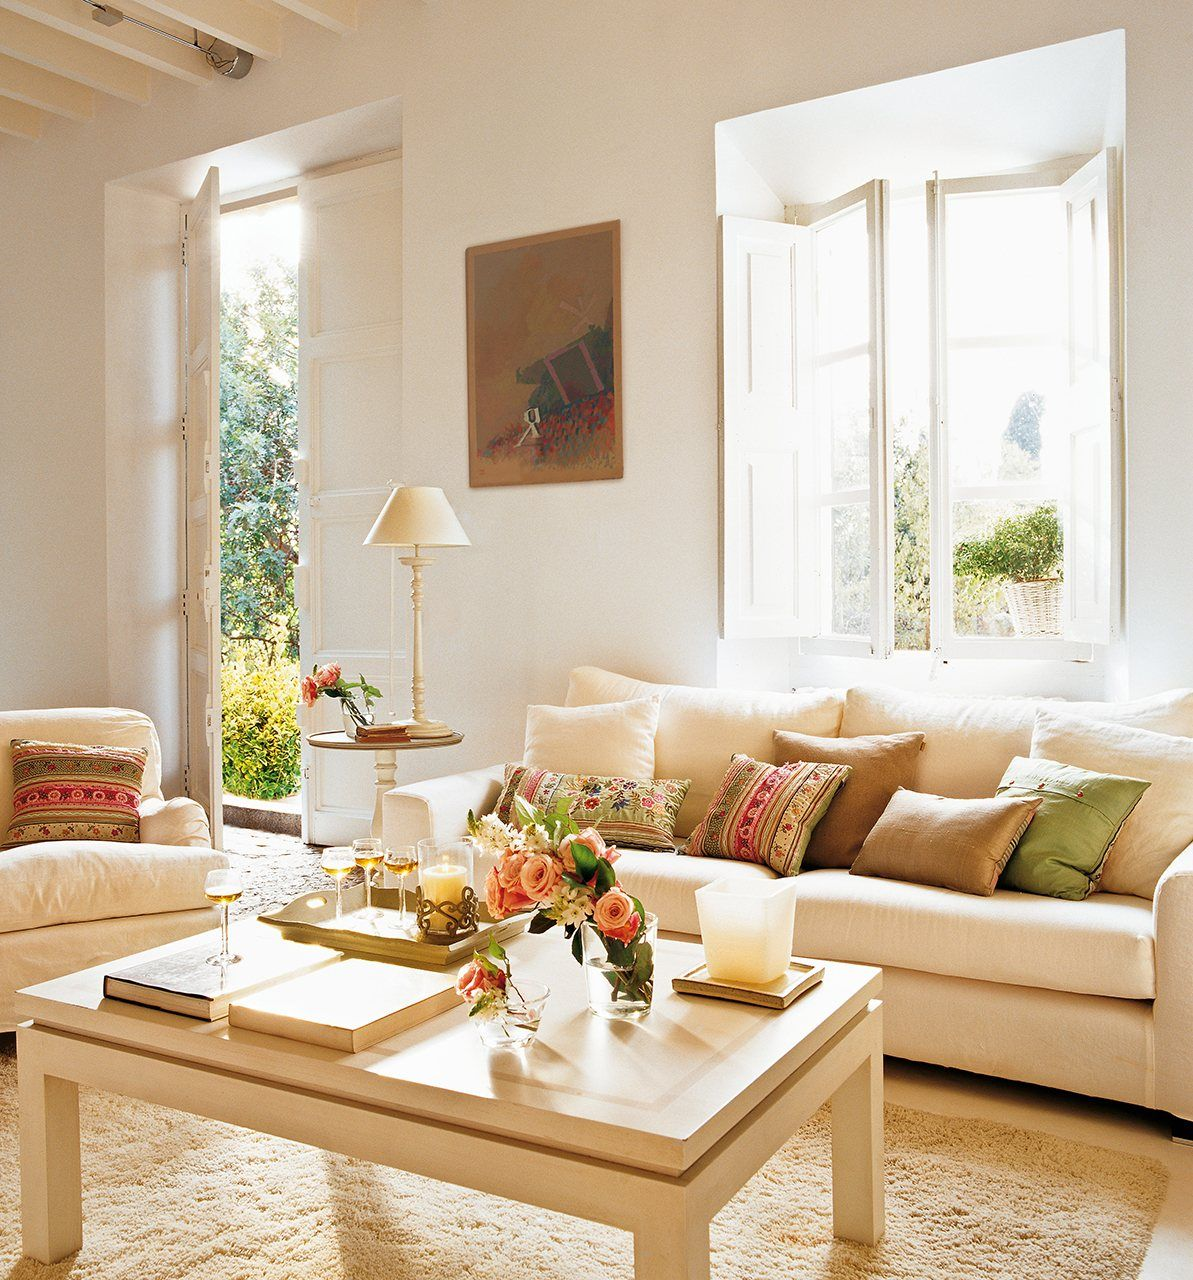 classic | Cute living room, Beige living rooms, Dream ... on Fun Living Room Ideas  id=32172